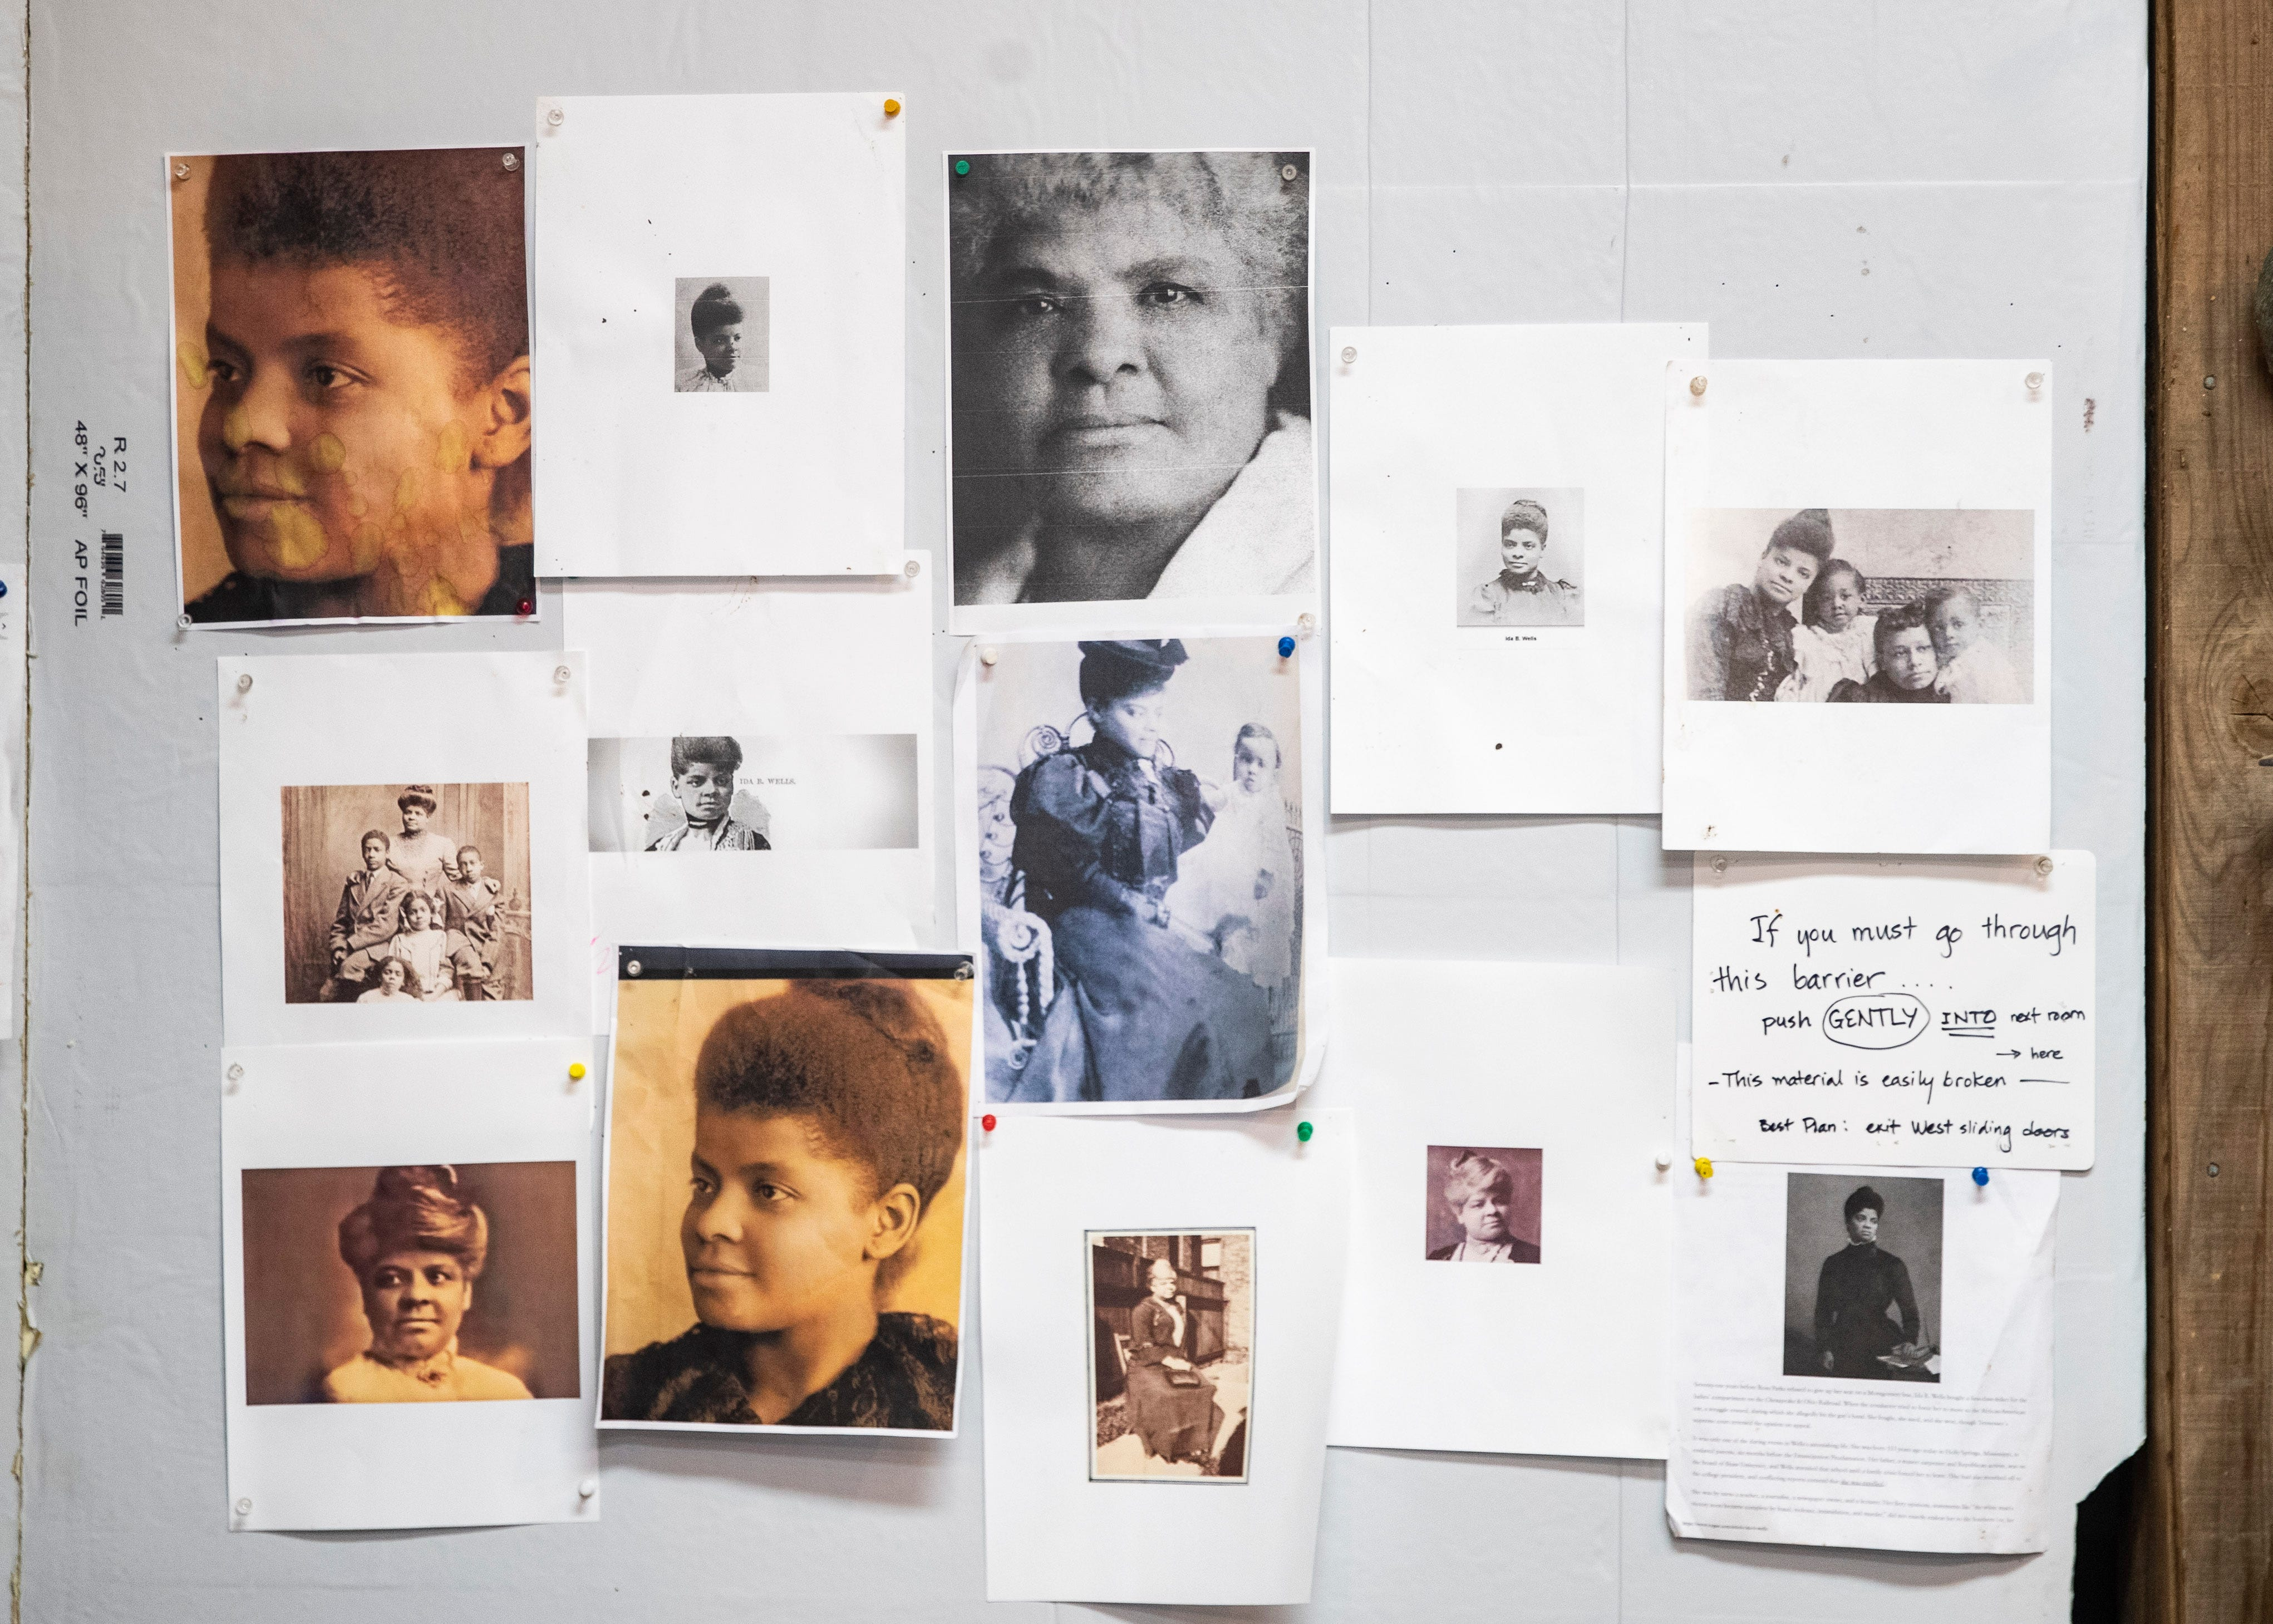 Photos of Ida B. Wells, the African American civil rights advocate and journalist who fought against racism, segregation and lynching, are seen on a wall inside sculptor Andrea Lugar's studio.